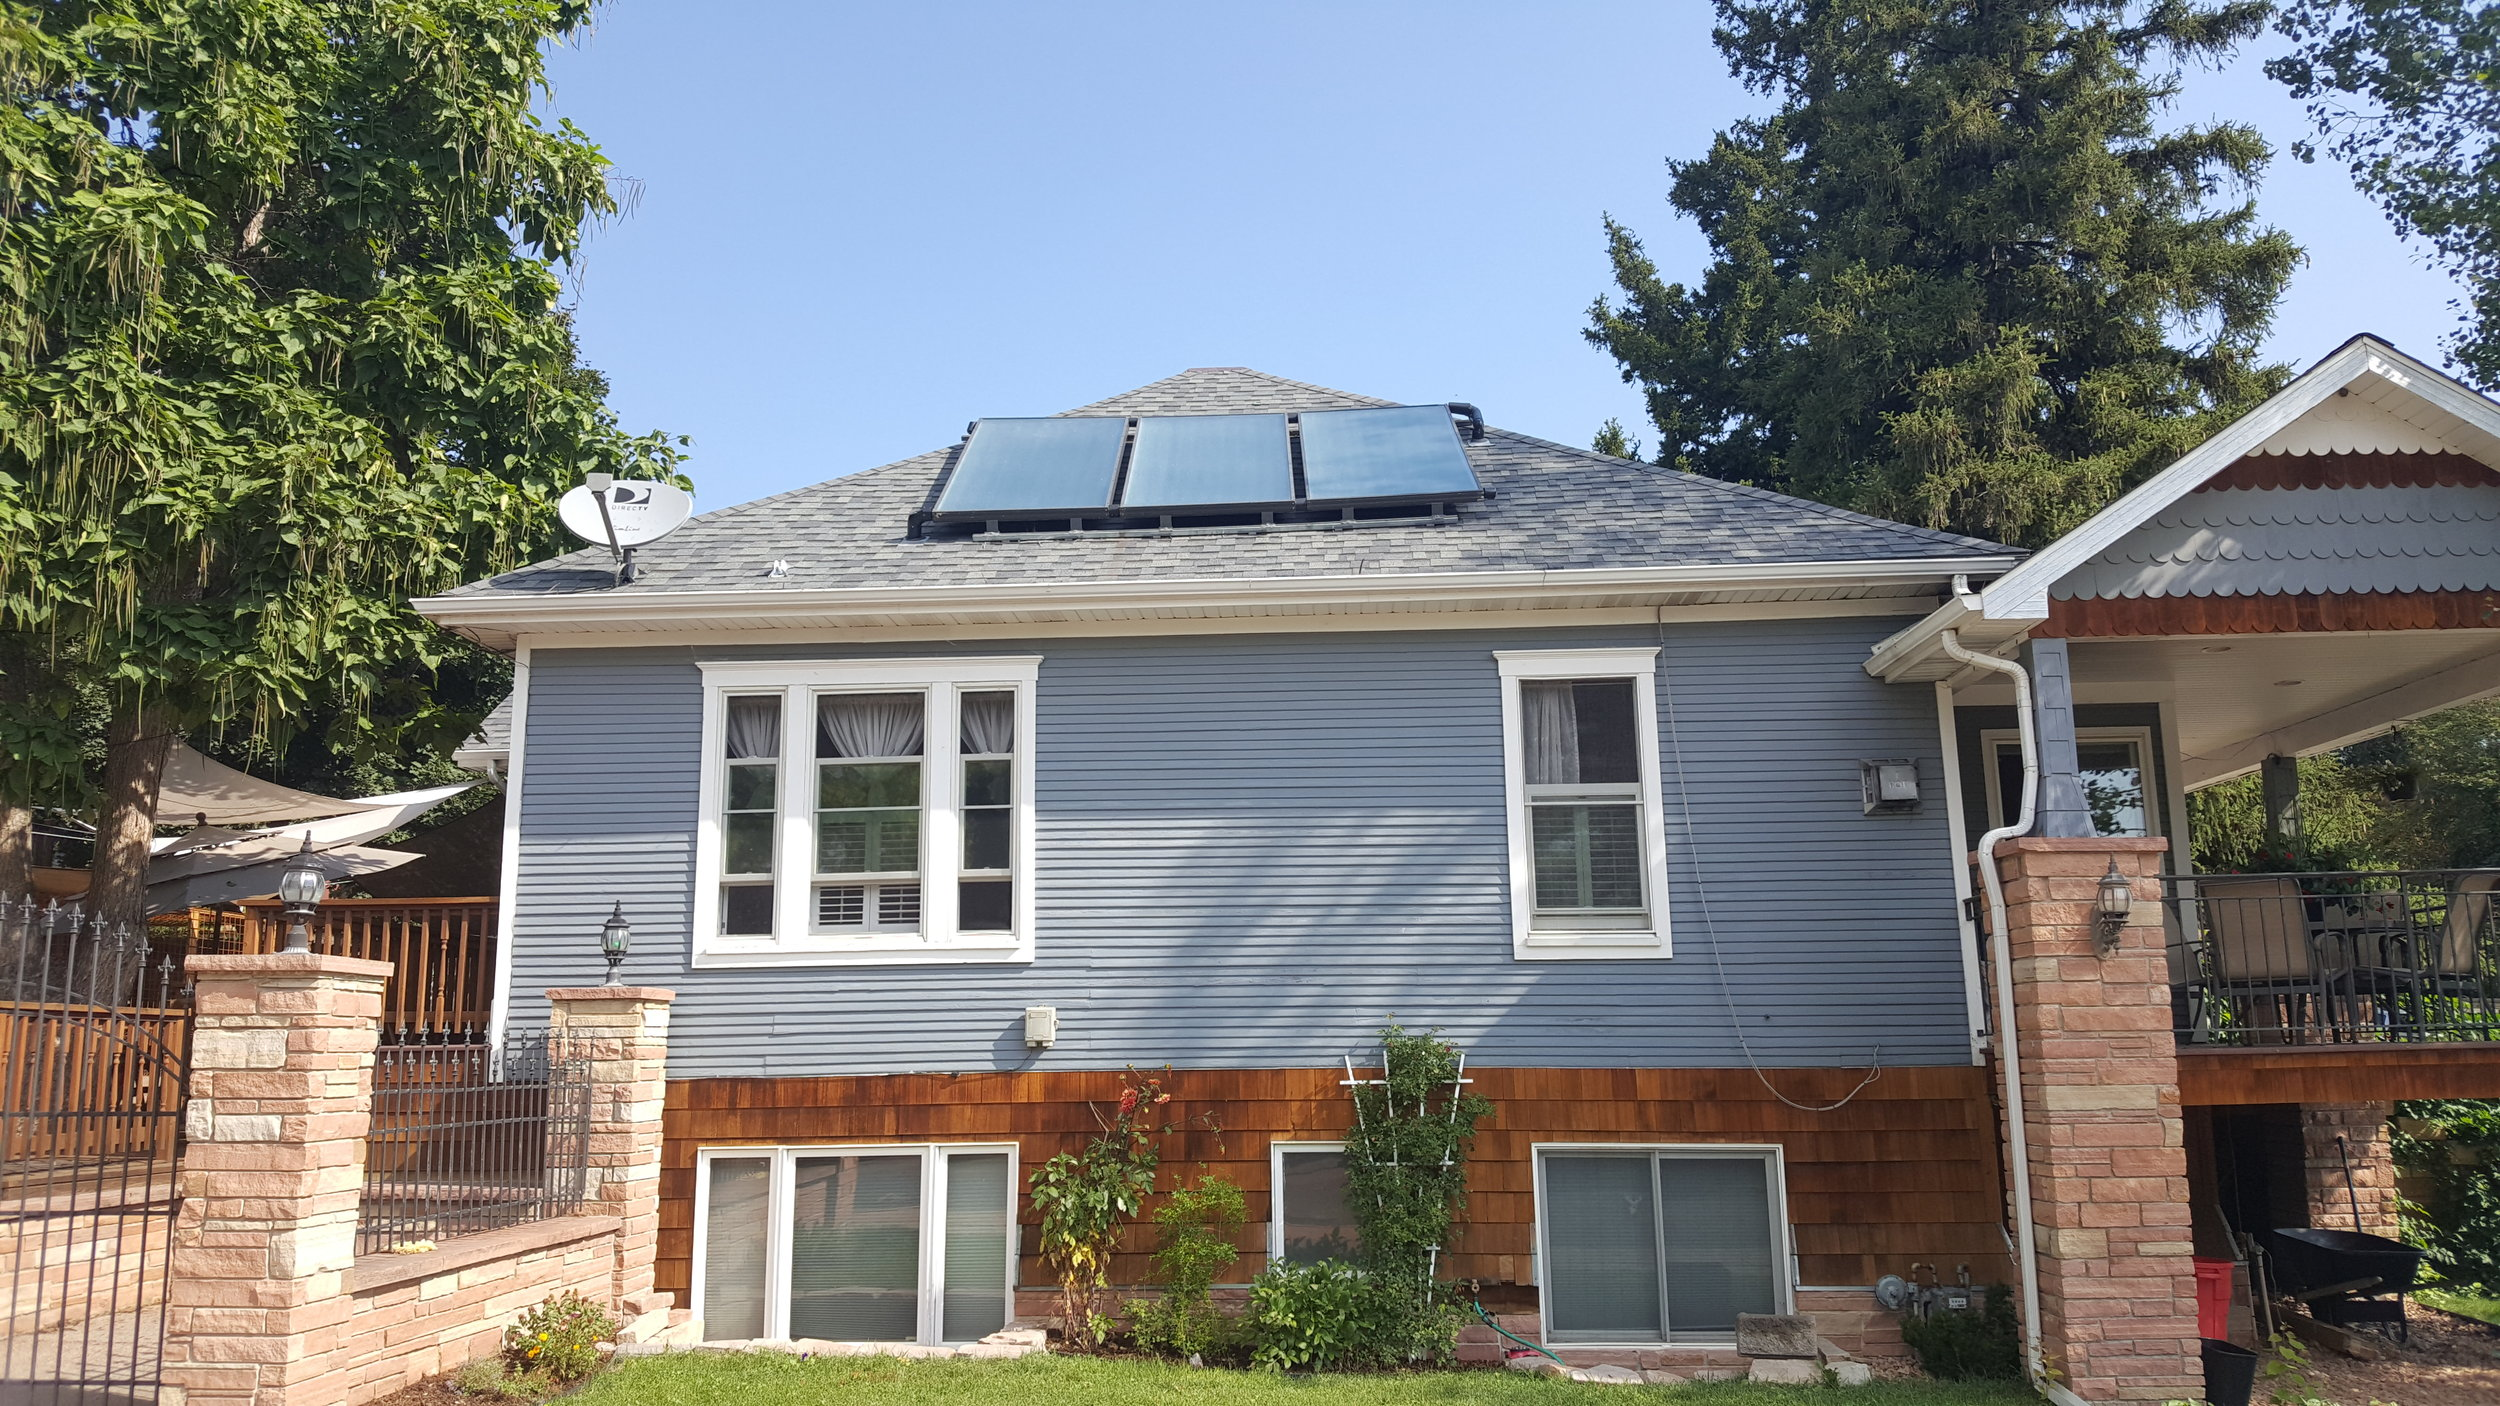 Three flush mounted solar hot water panels in Louisville, Colorado